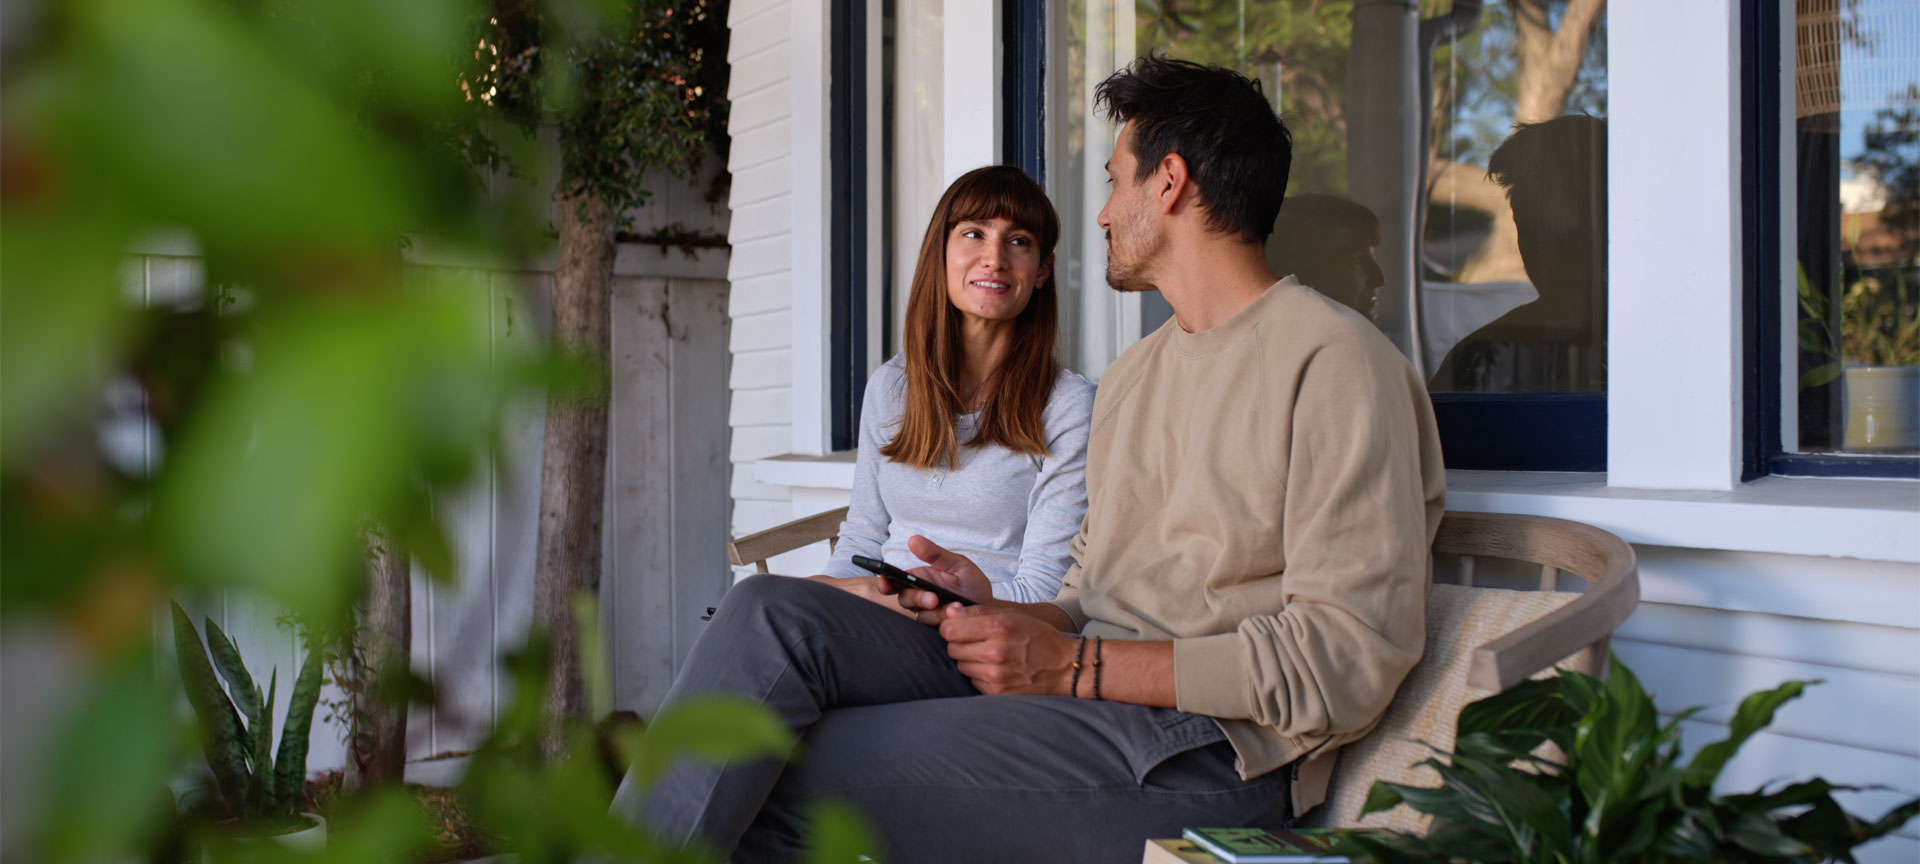 Couple sitting on a bench in front of a house